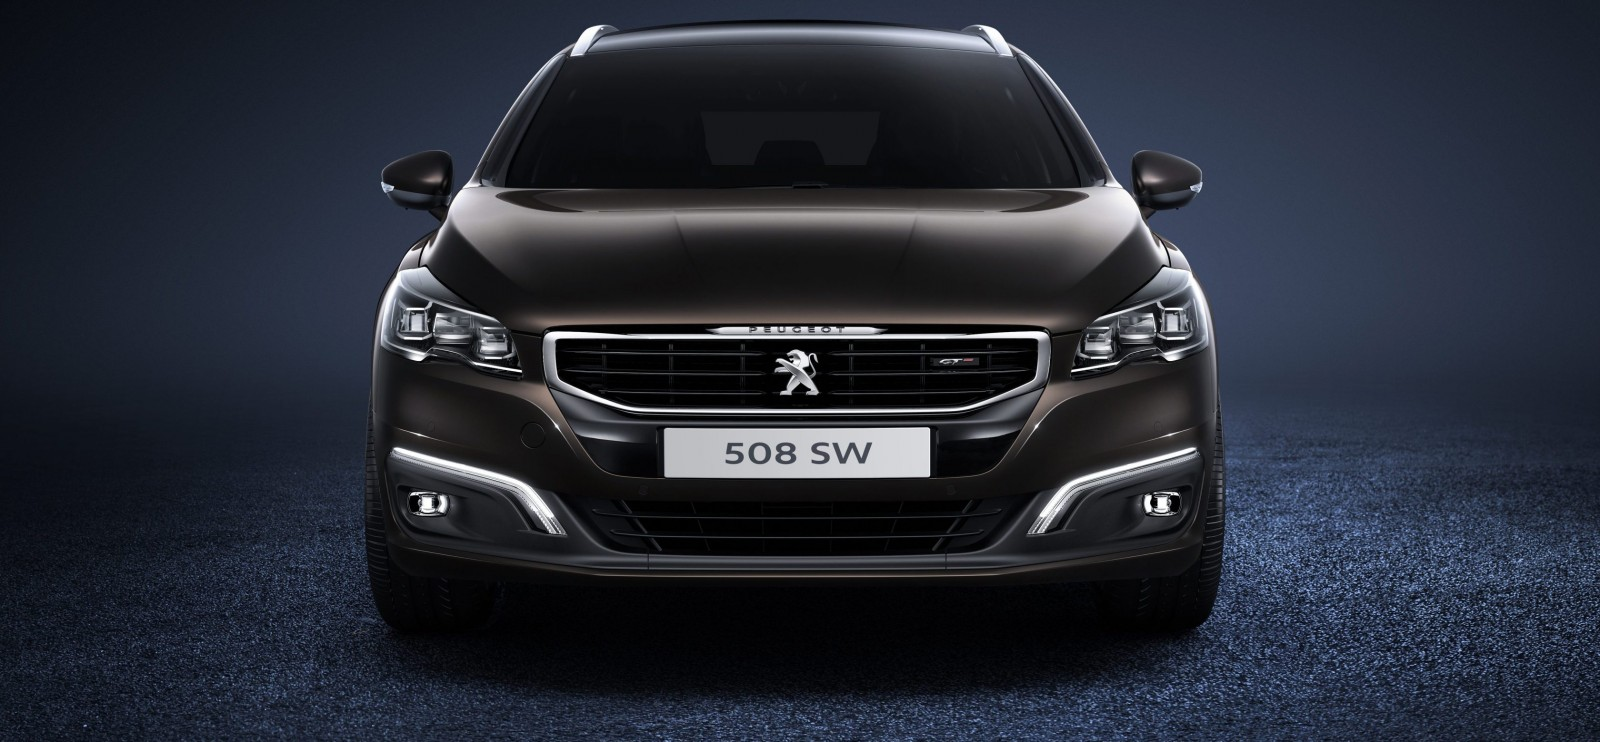 2015 Peugeot 508 Facelifted With New LED DRLs, Box-Design Beams and Tweaked Cabin Tech 21